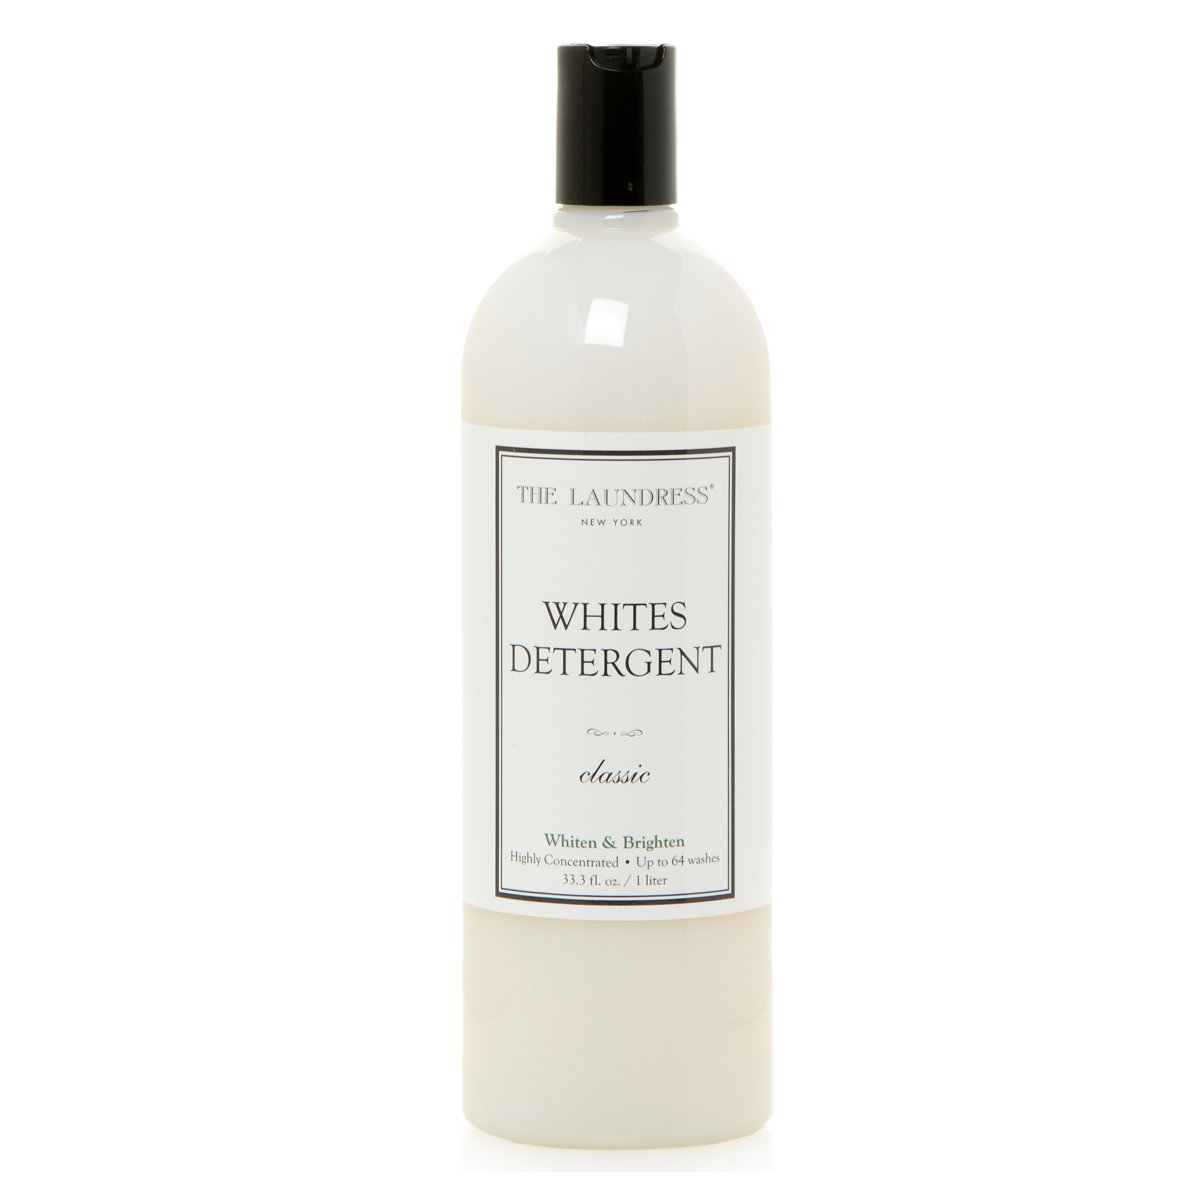 The Laundress - Whites Detergent